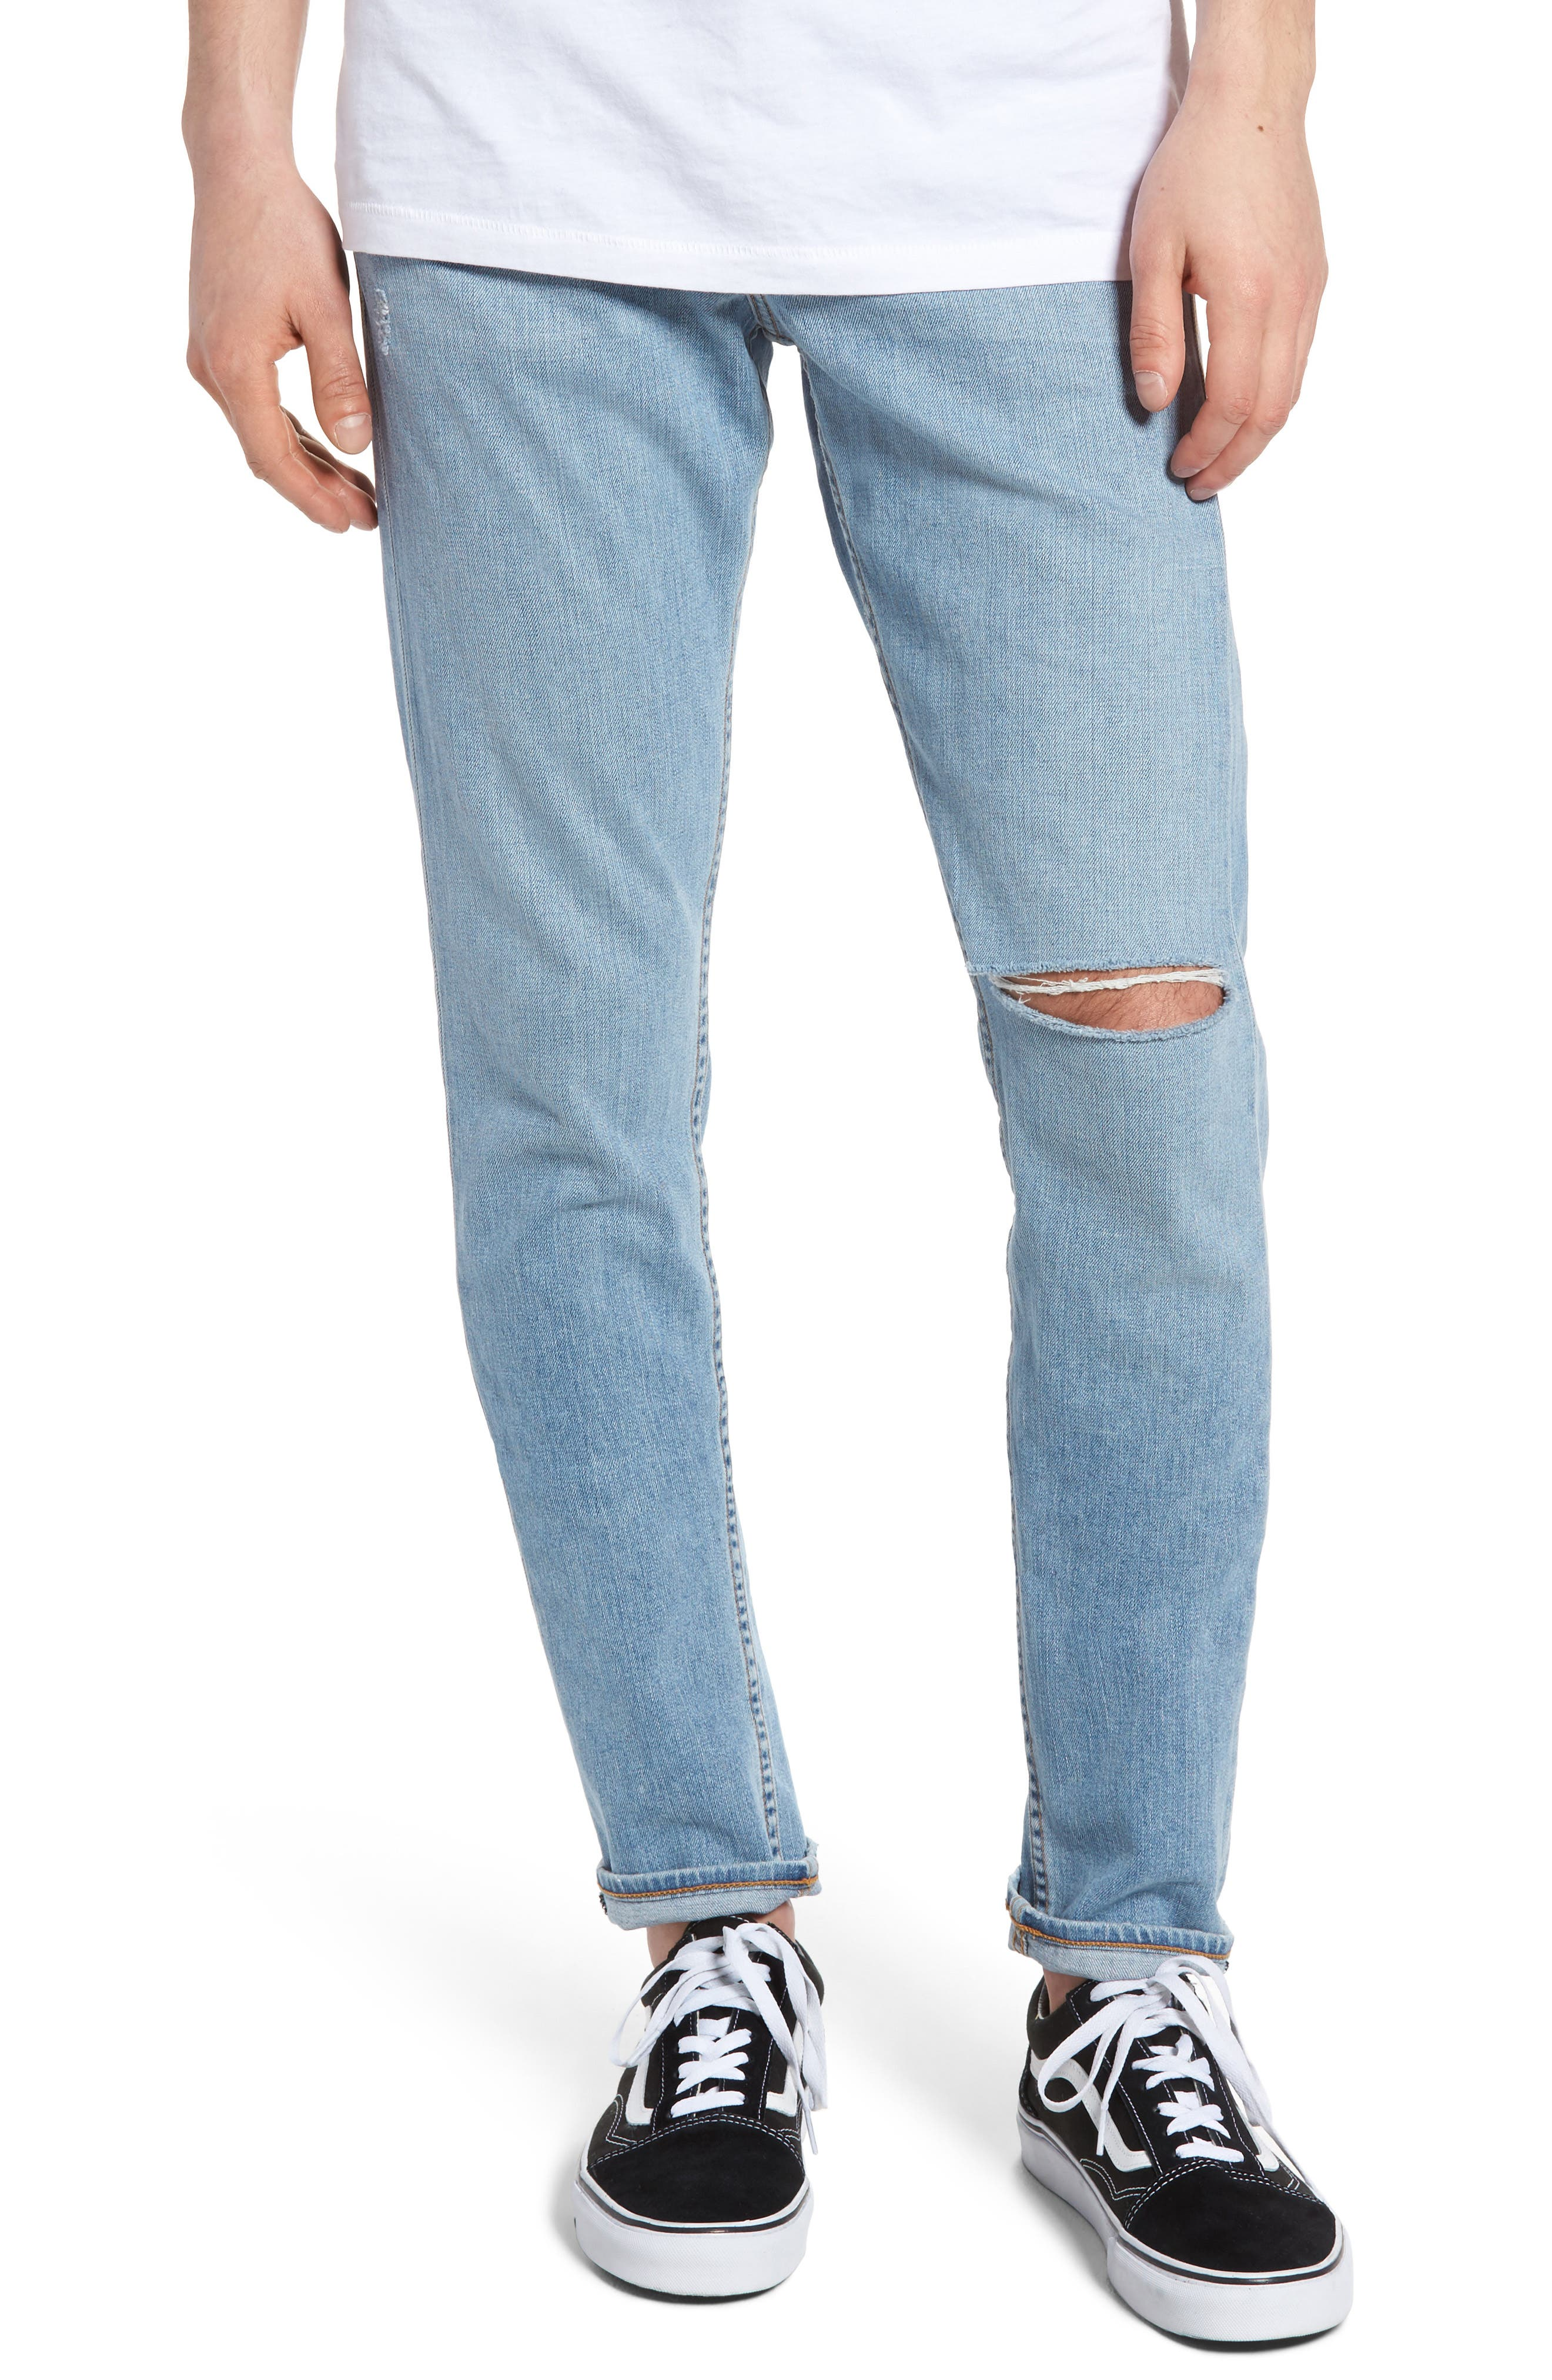 Fit 1 Skinny Fit Jeans,                             Main thumbnail 1, color,                             462